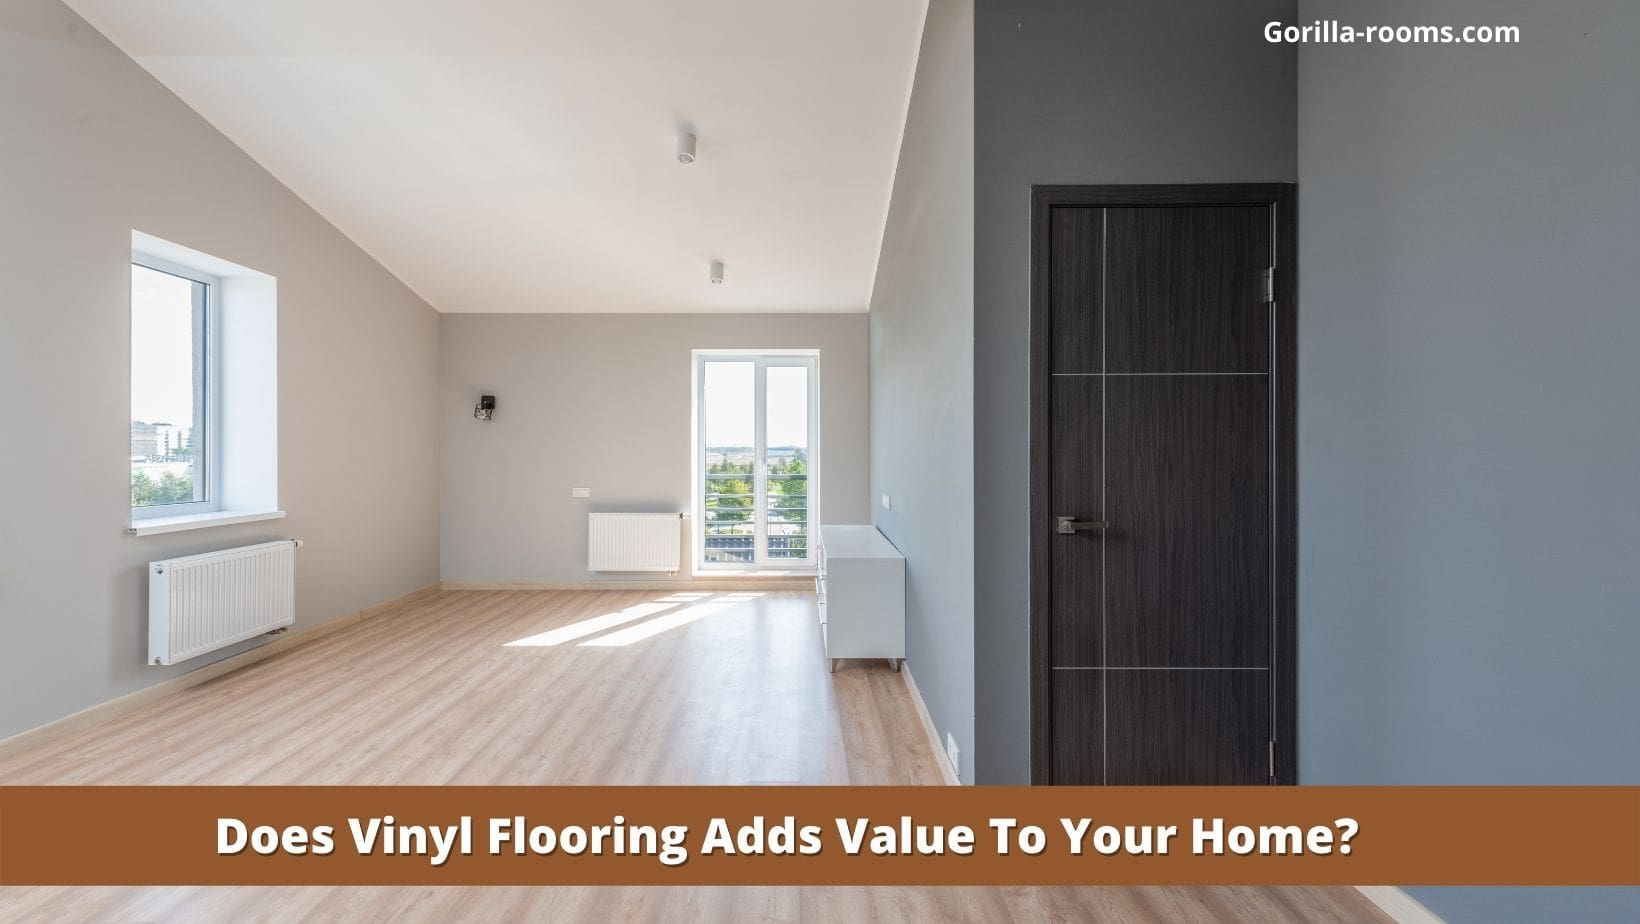 Does Vinyl Flooring Adds Value To Your Home